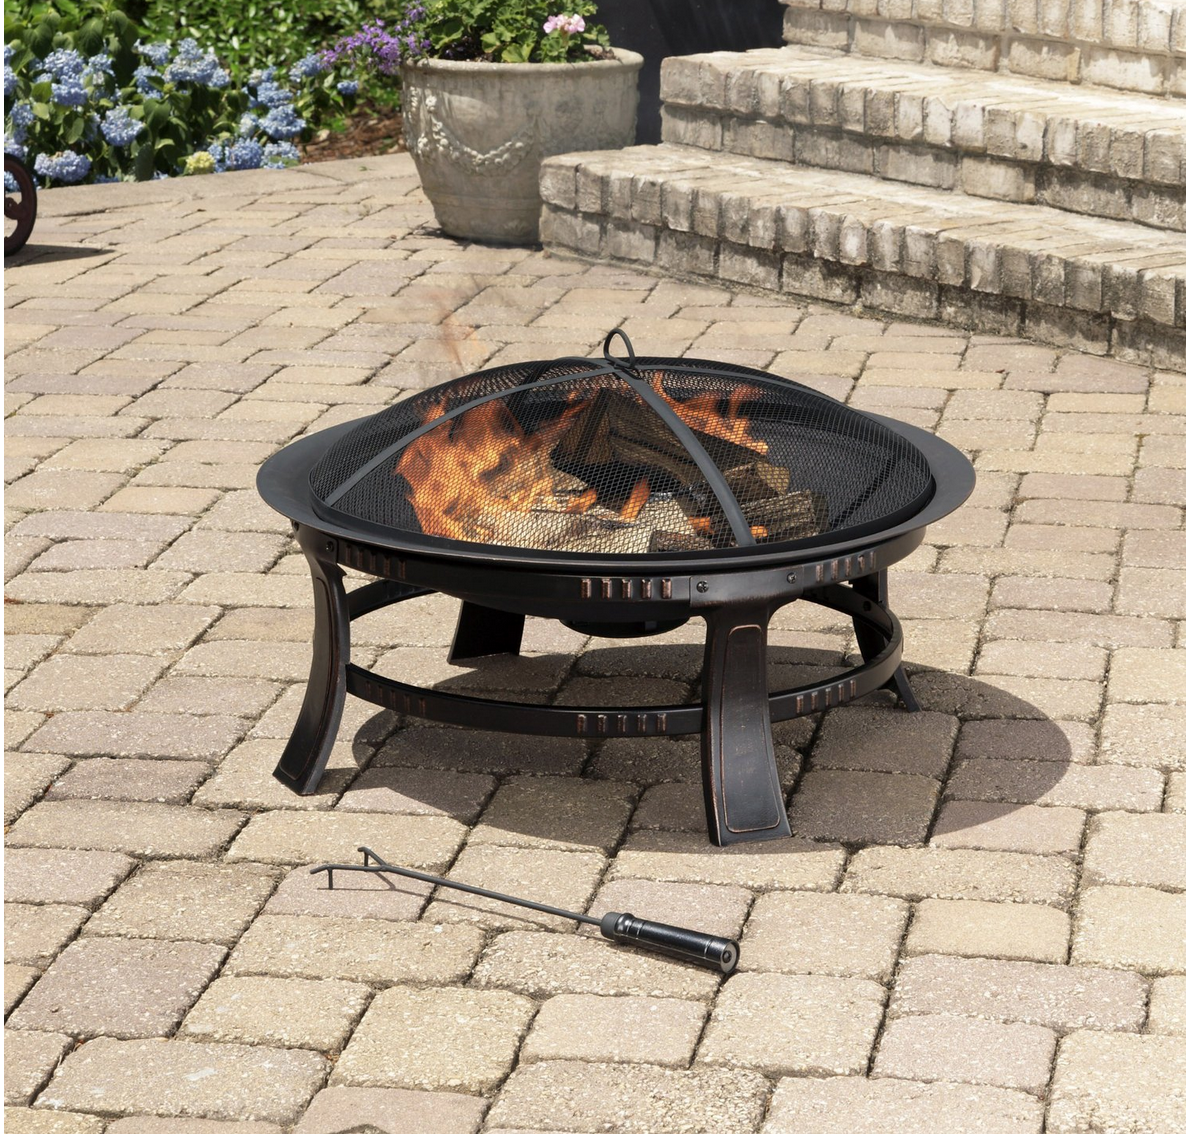 Pleasant Hearth Brant Round Fire Pit, 30-Inch Only $64.88 (Reg. $119.99!)